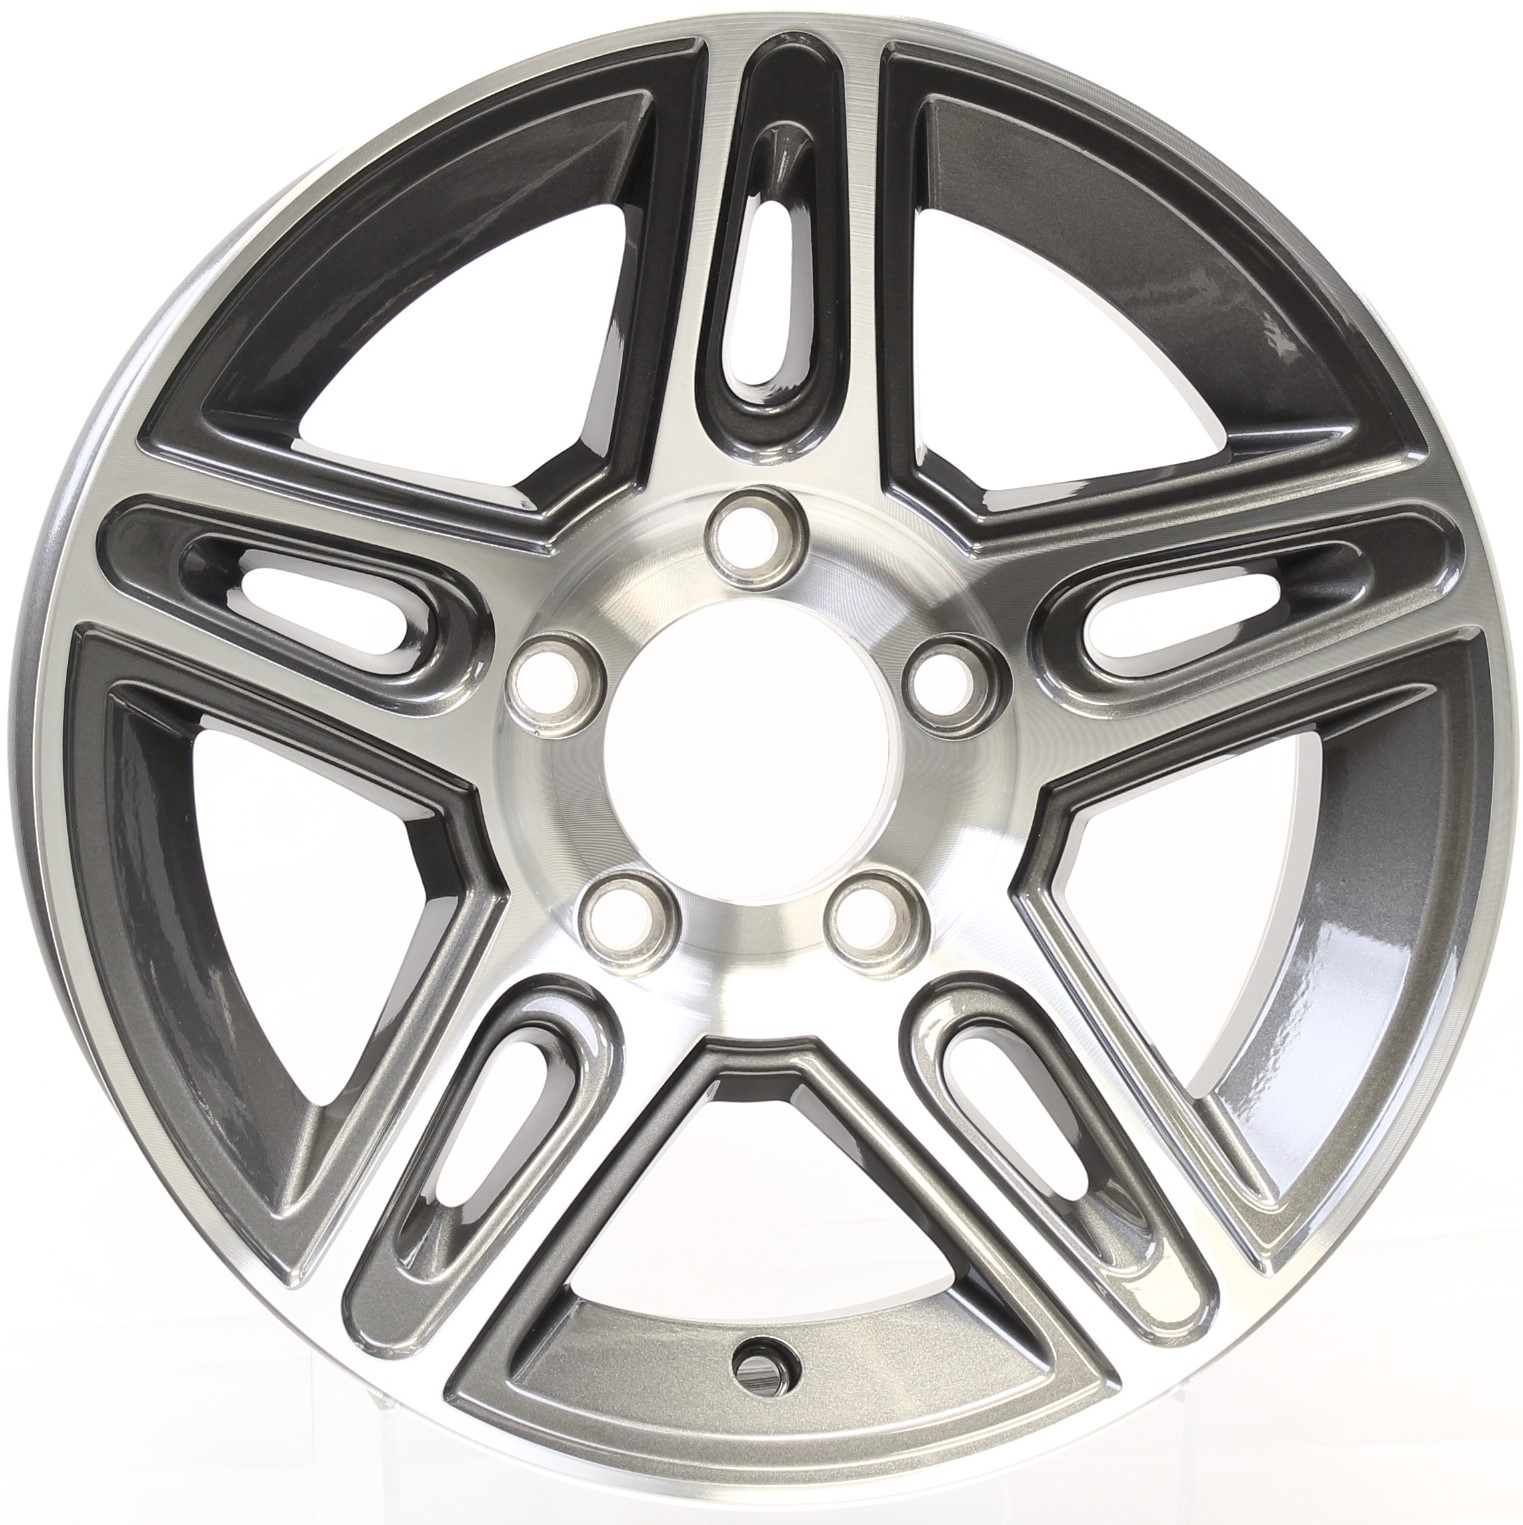 Pinnacle- 13x5 5-4.5 Gunmetal Aluminum Trailer Wheel Image